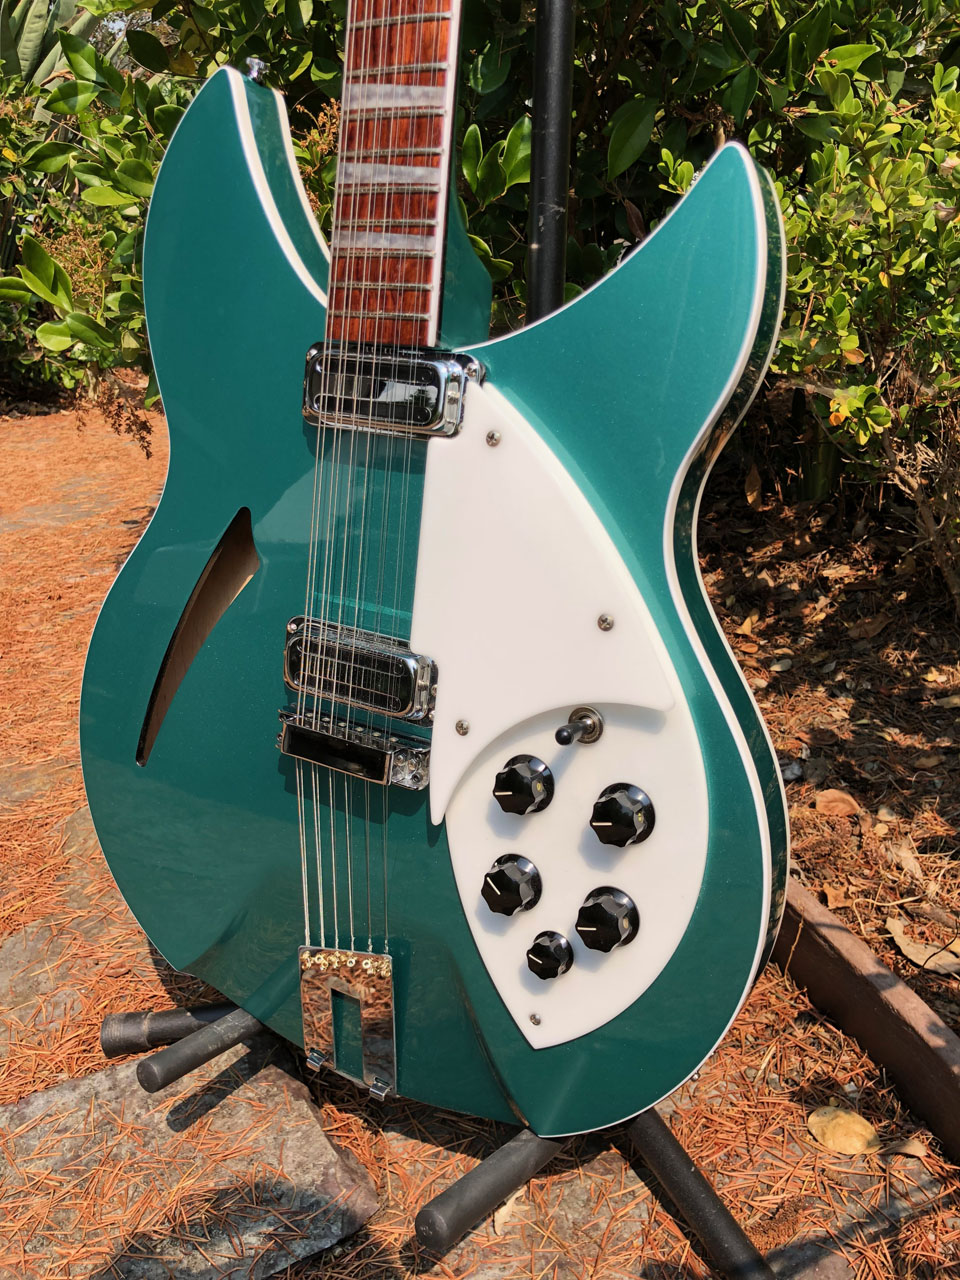 CLASSIC RICKENBACKER DETAILS DATE FROM 1964